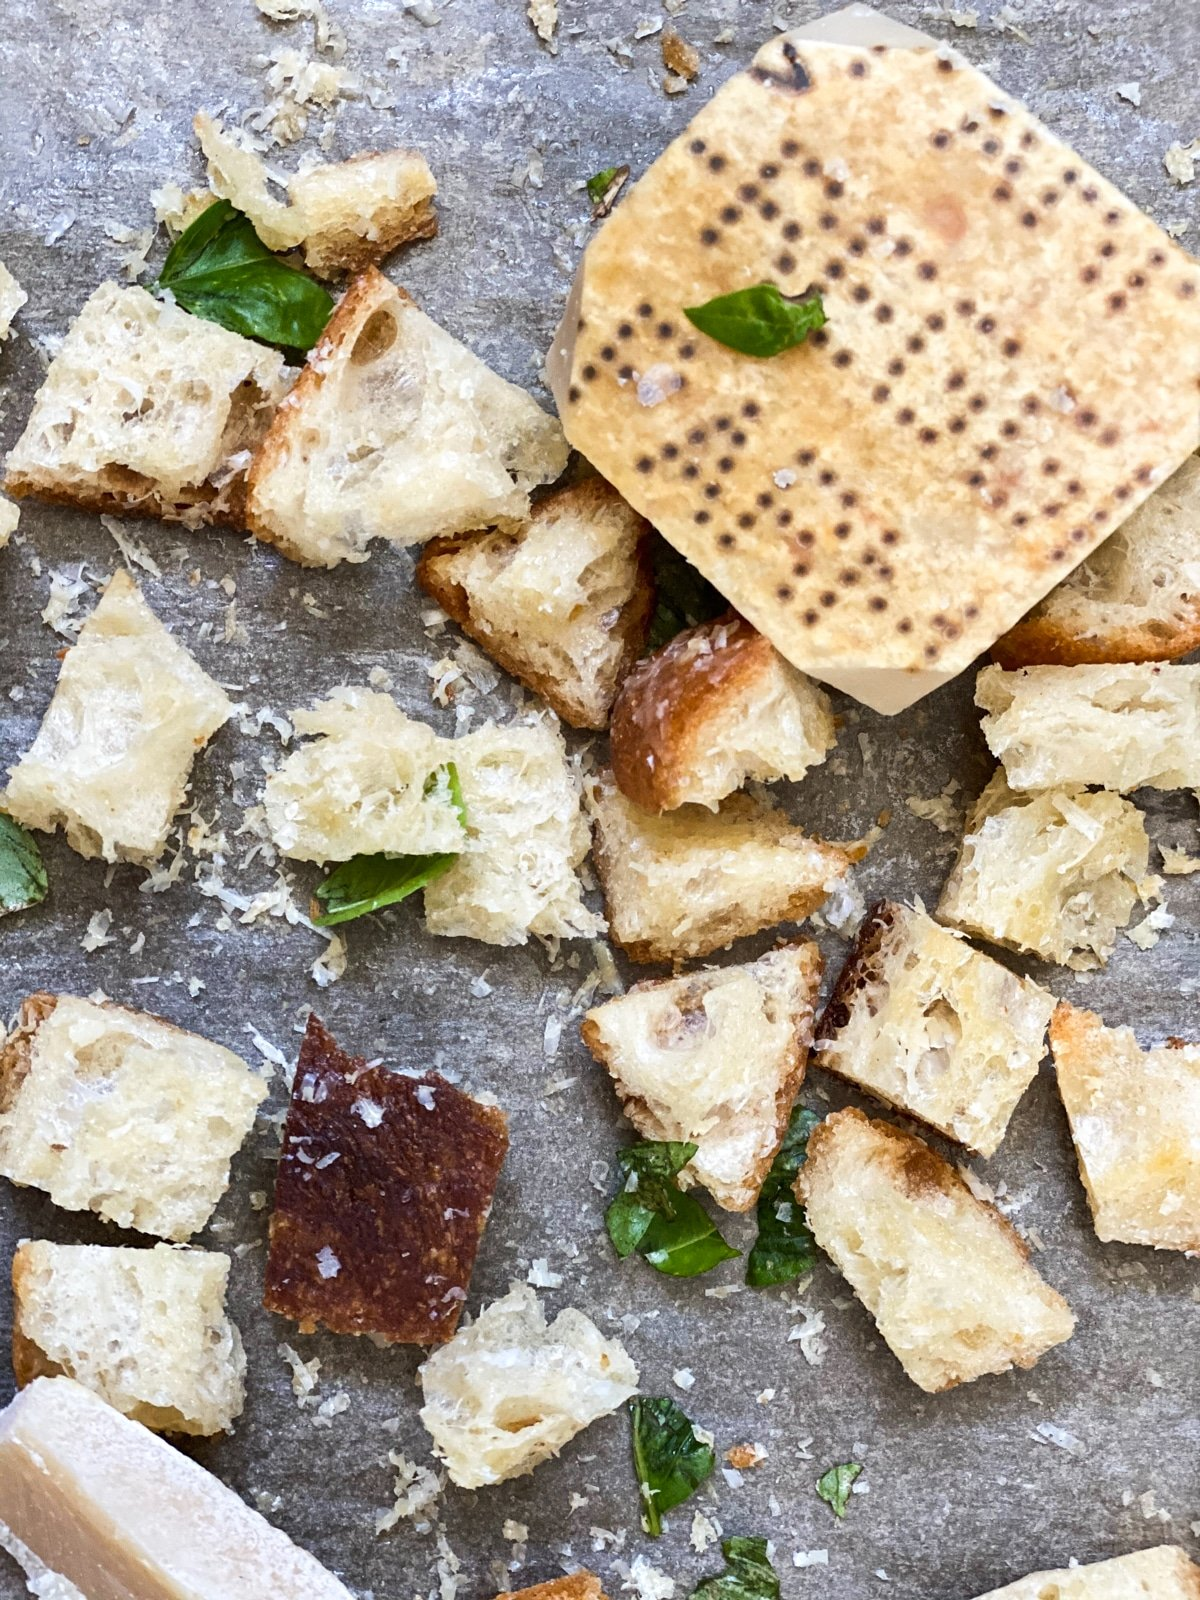 baked croutons and parmesan